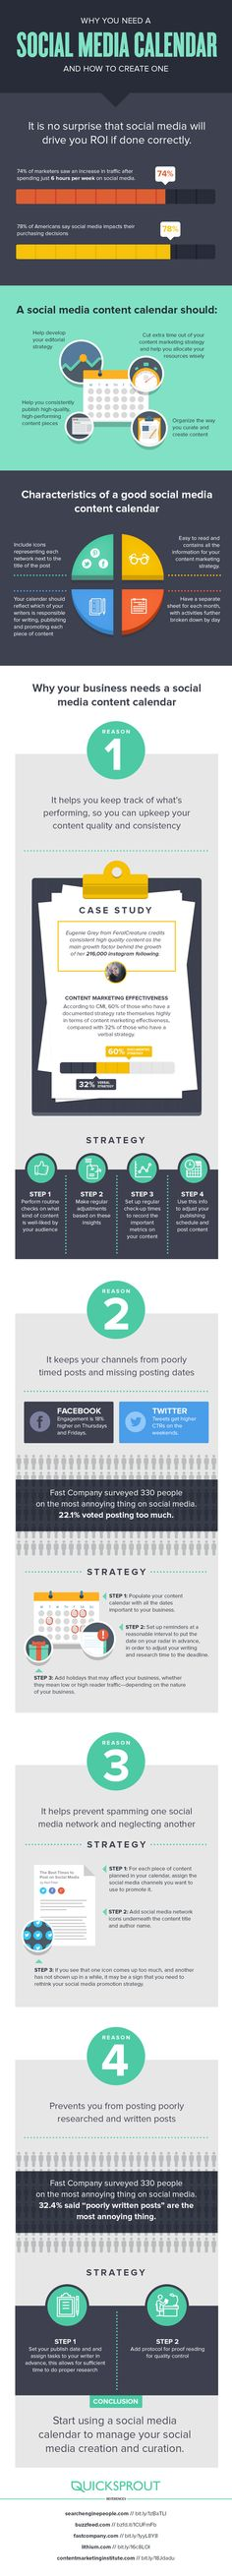 Why Your Business Needs a #SocialMedia Editorial Calendar and How to Create One - #infographic